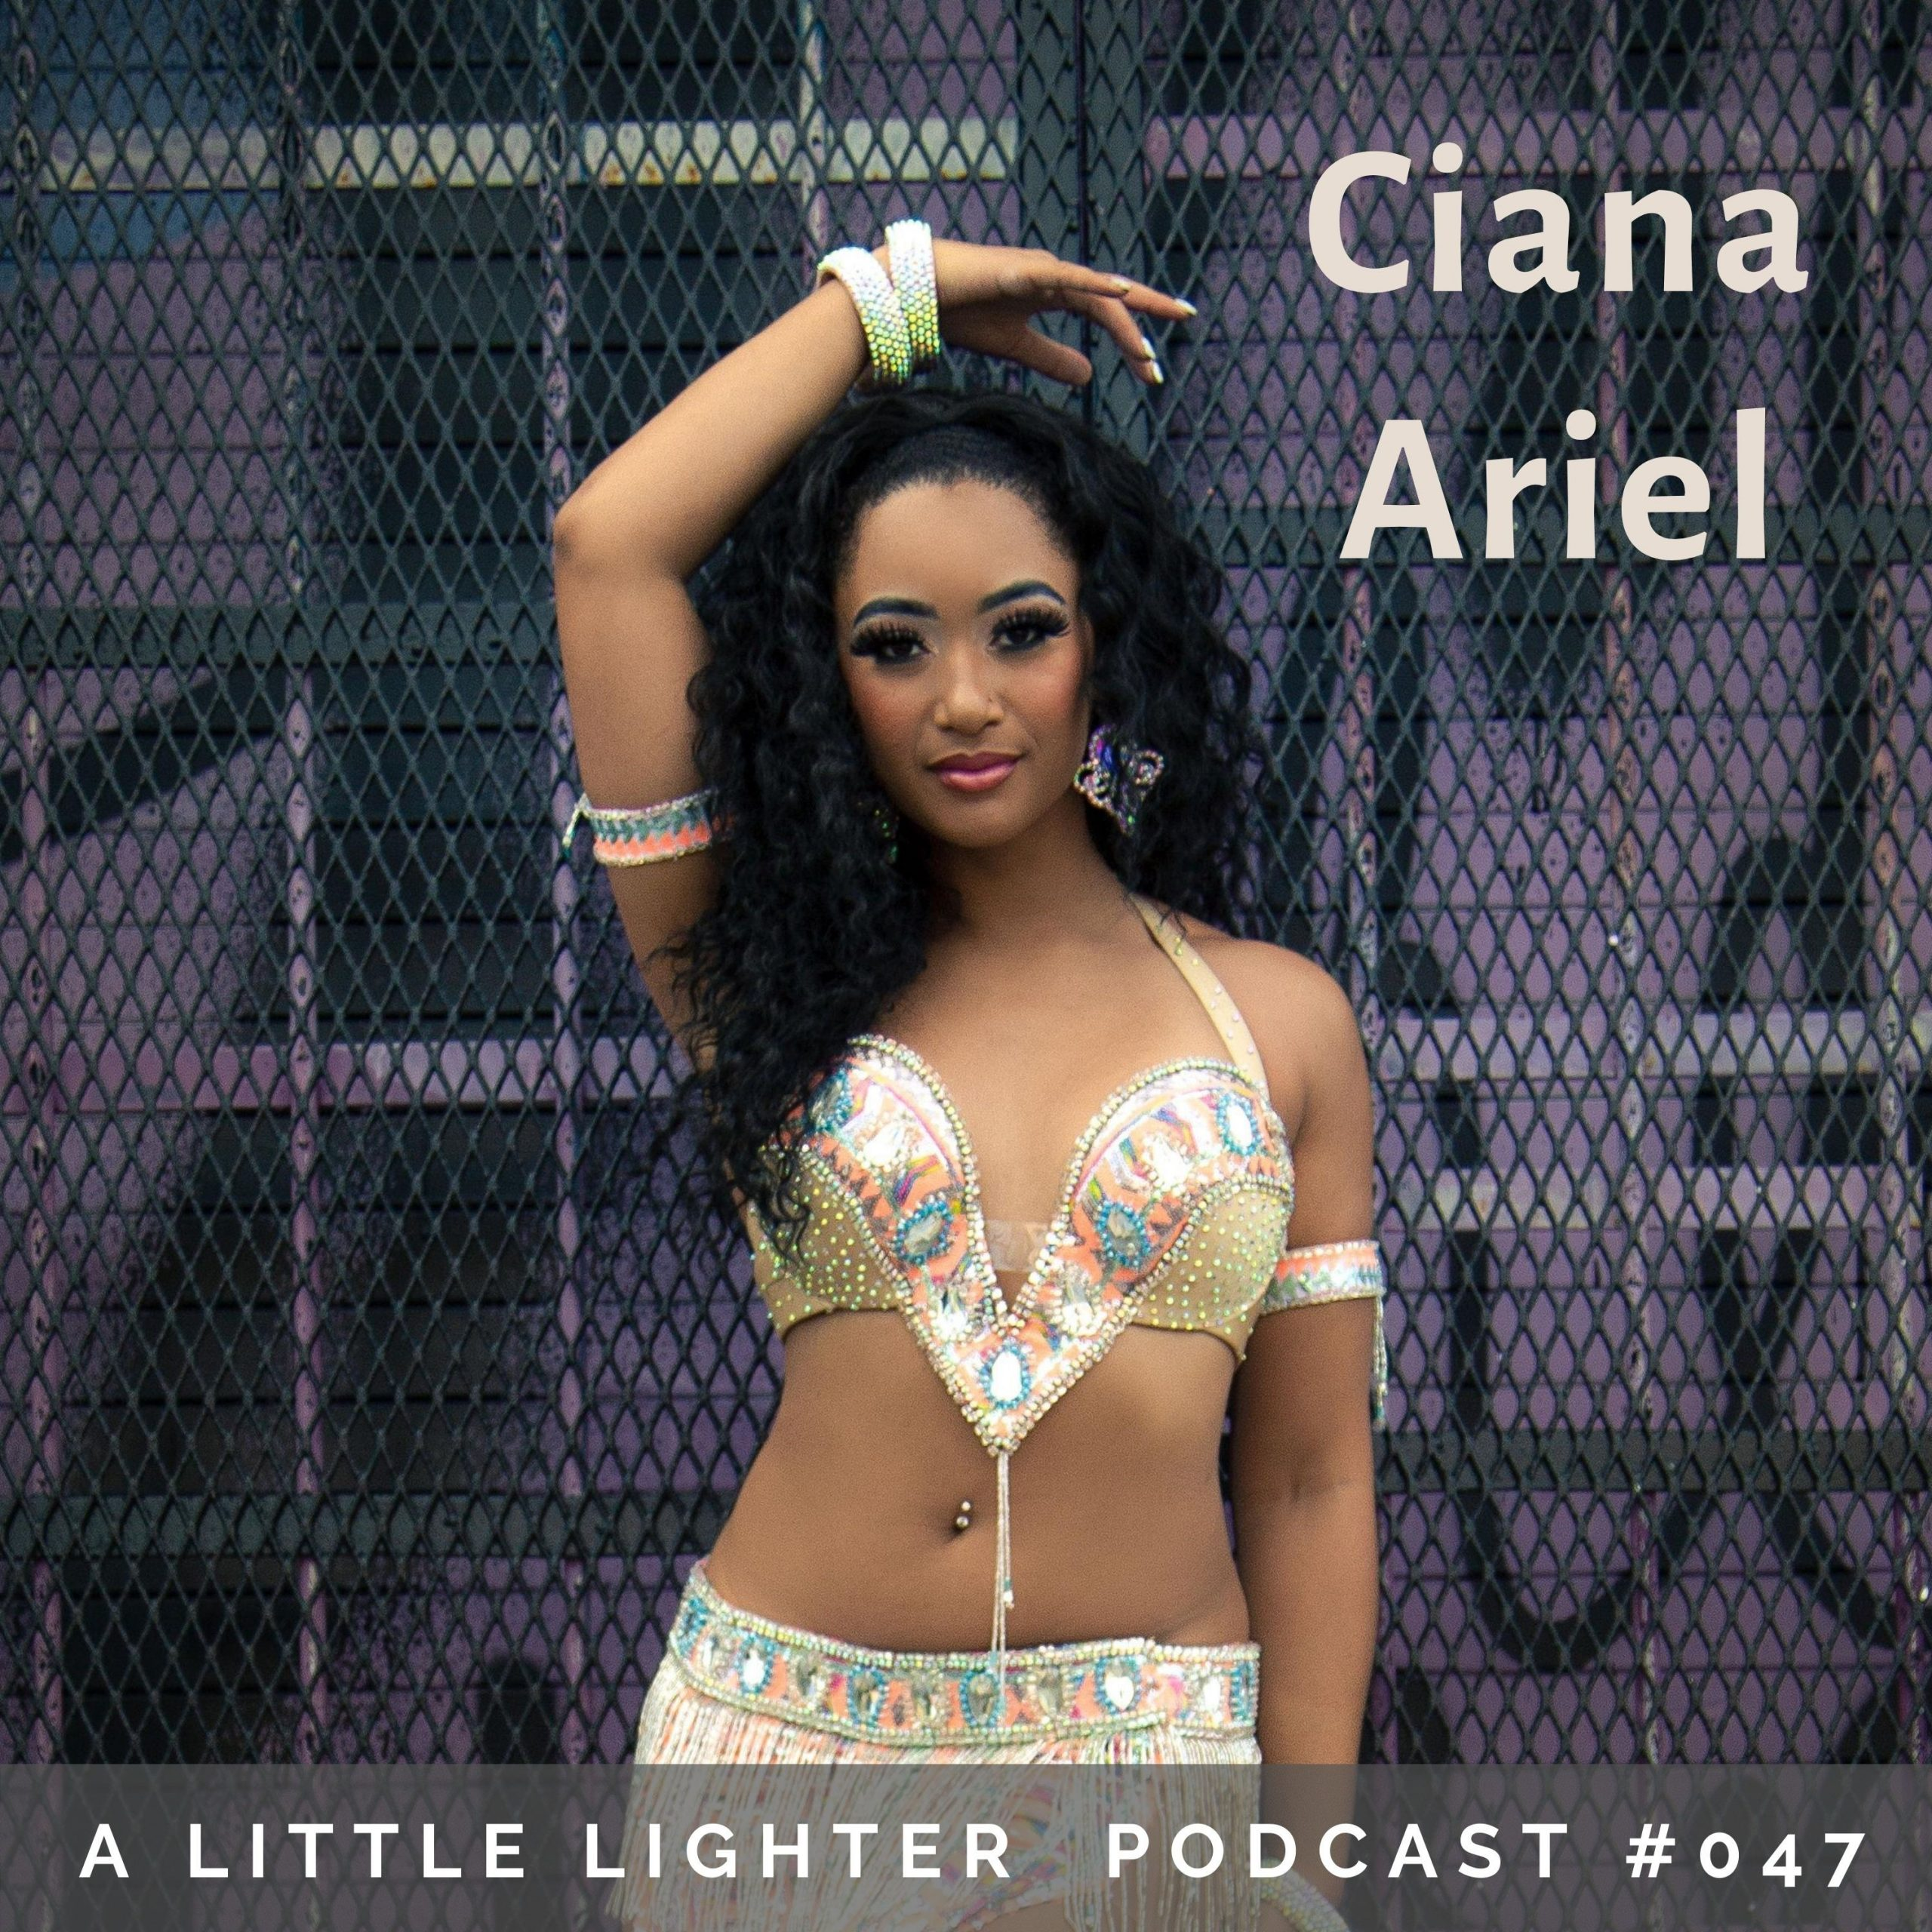 Belly Dance Podcast ciana ariel